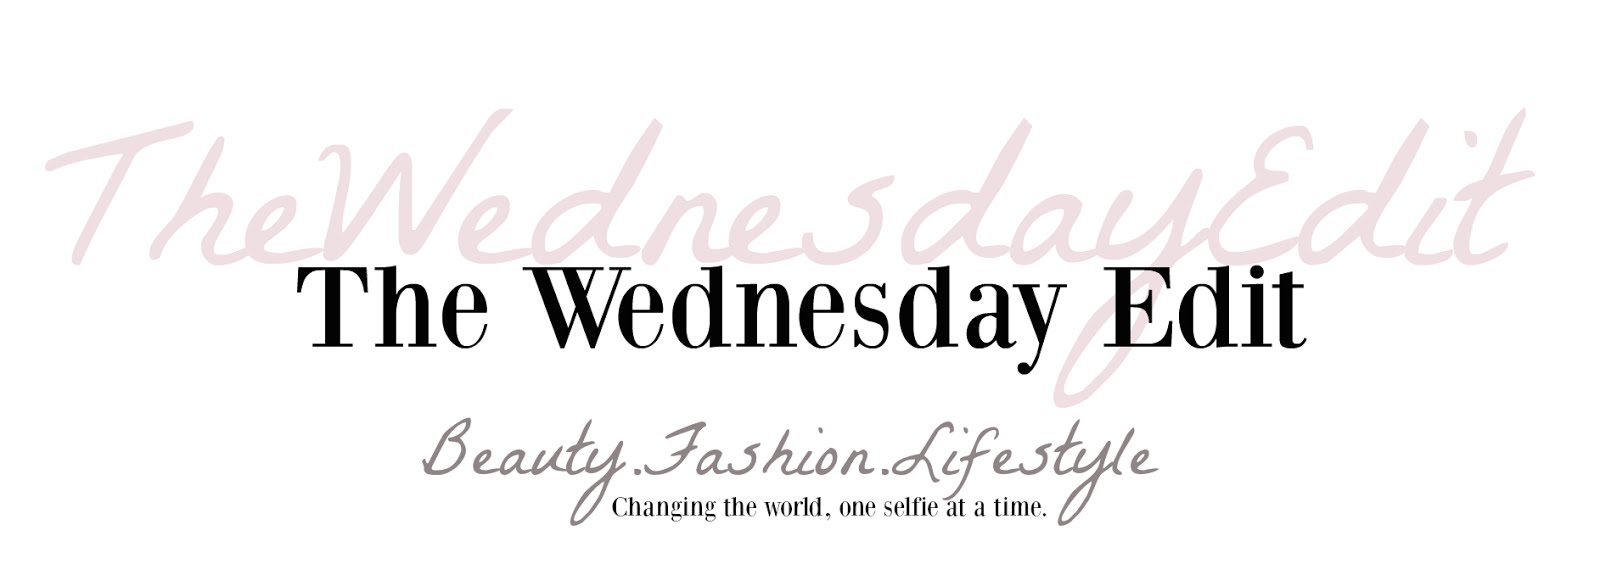 The Wednesday Edit